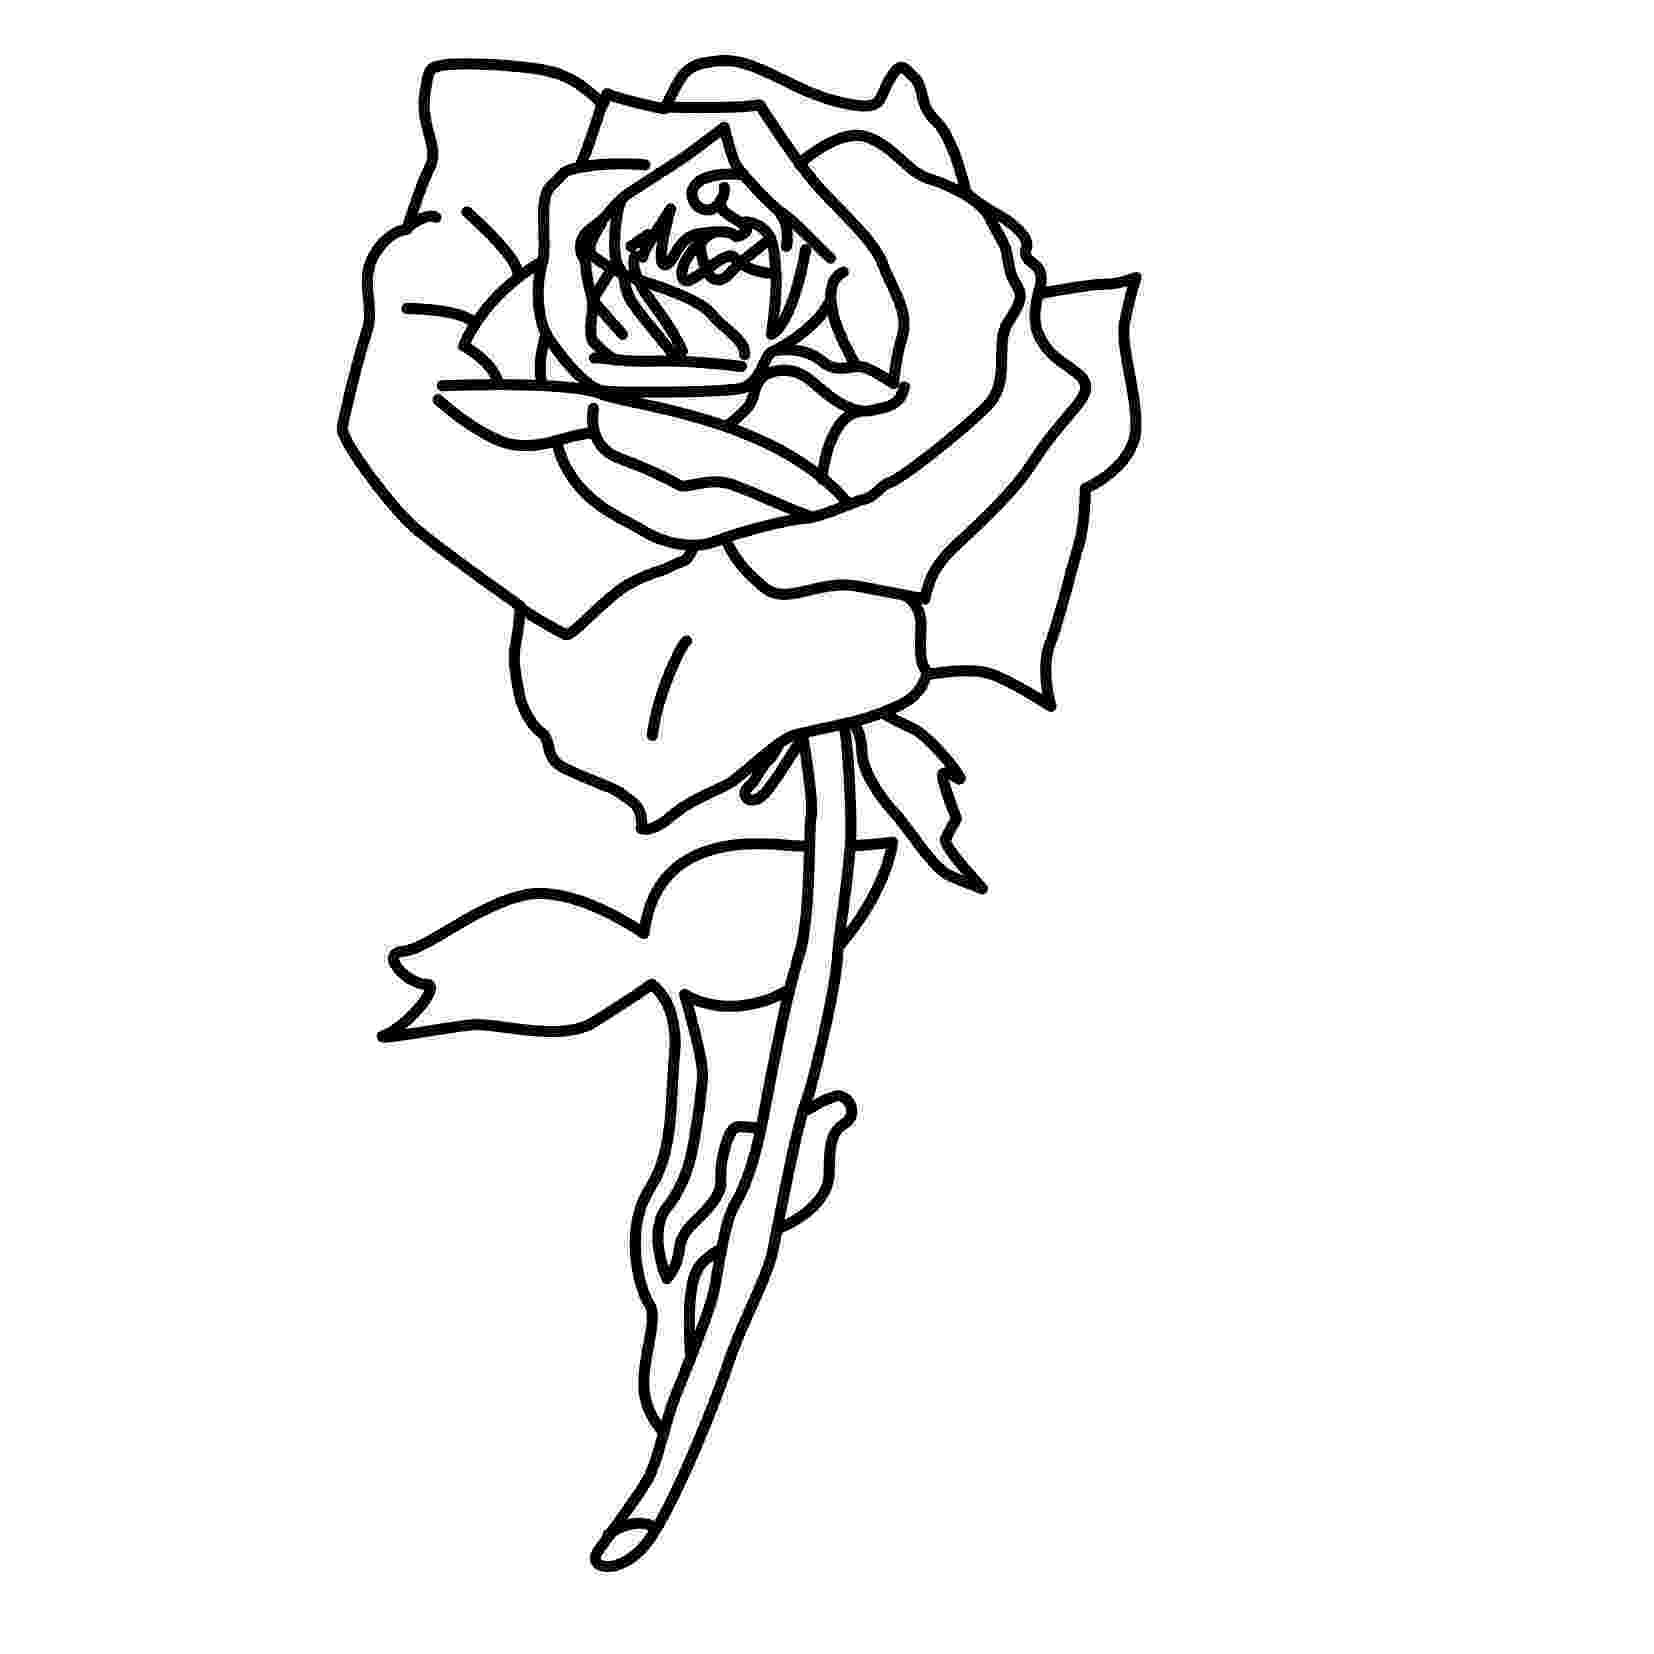 roses for coloring free printable roses coloring pages for kids coloring roses for 1 1